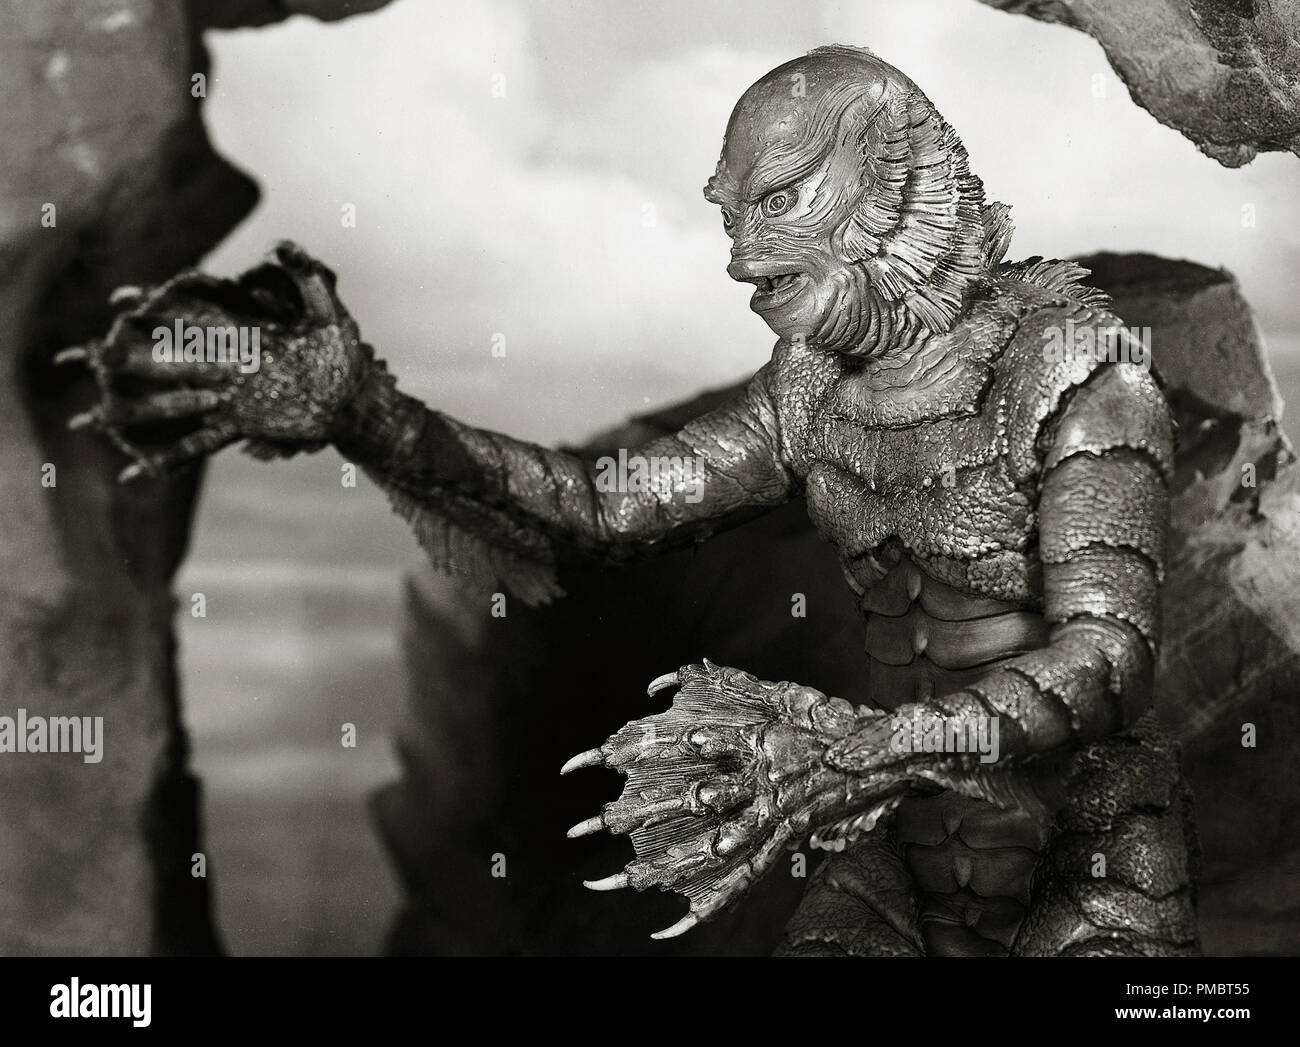 Creature From The Black Lagoon 1954 High Resolution Stock ...